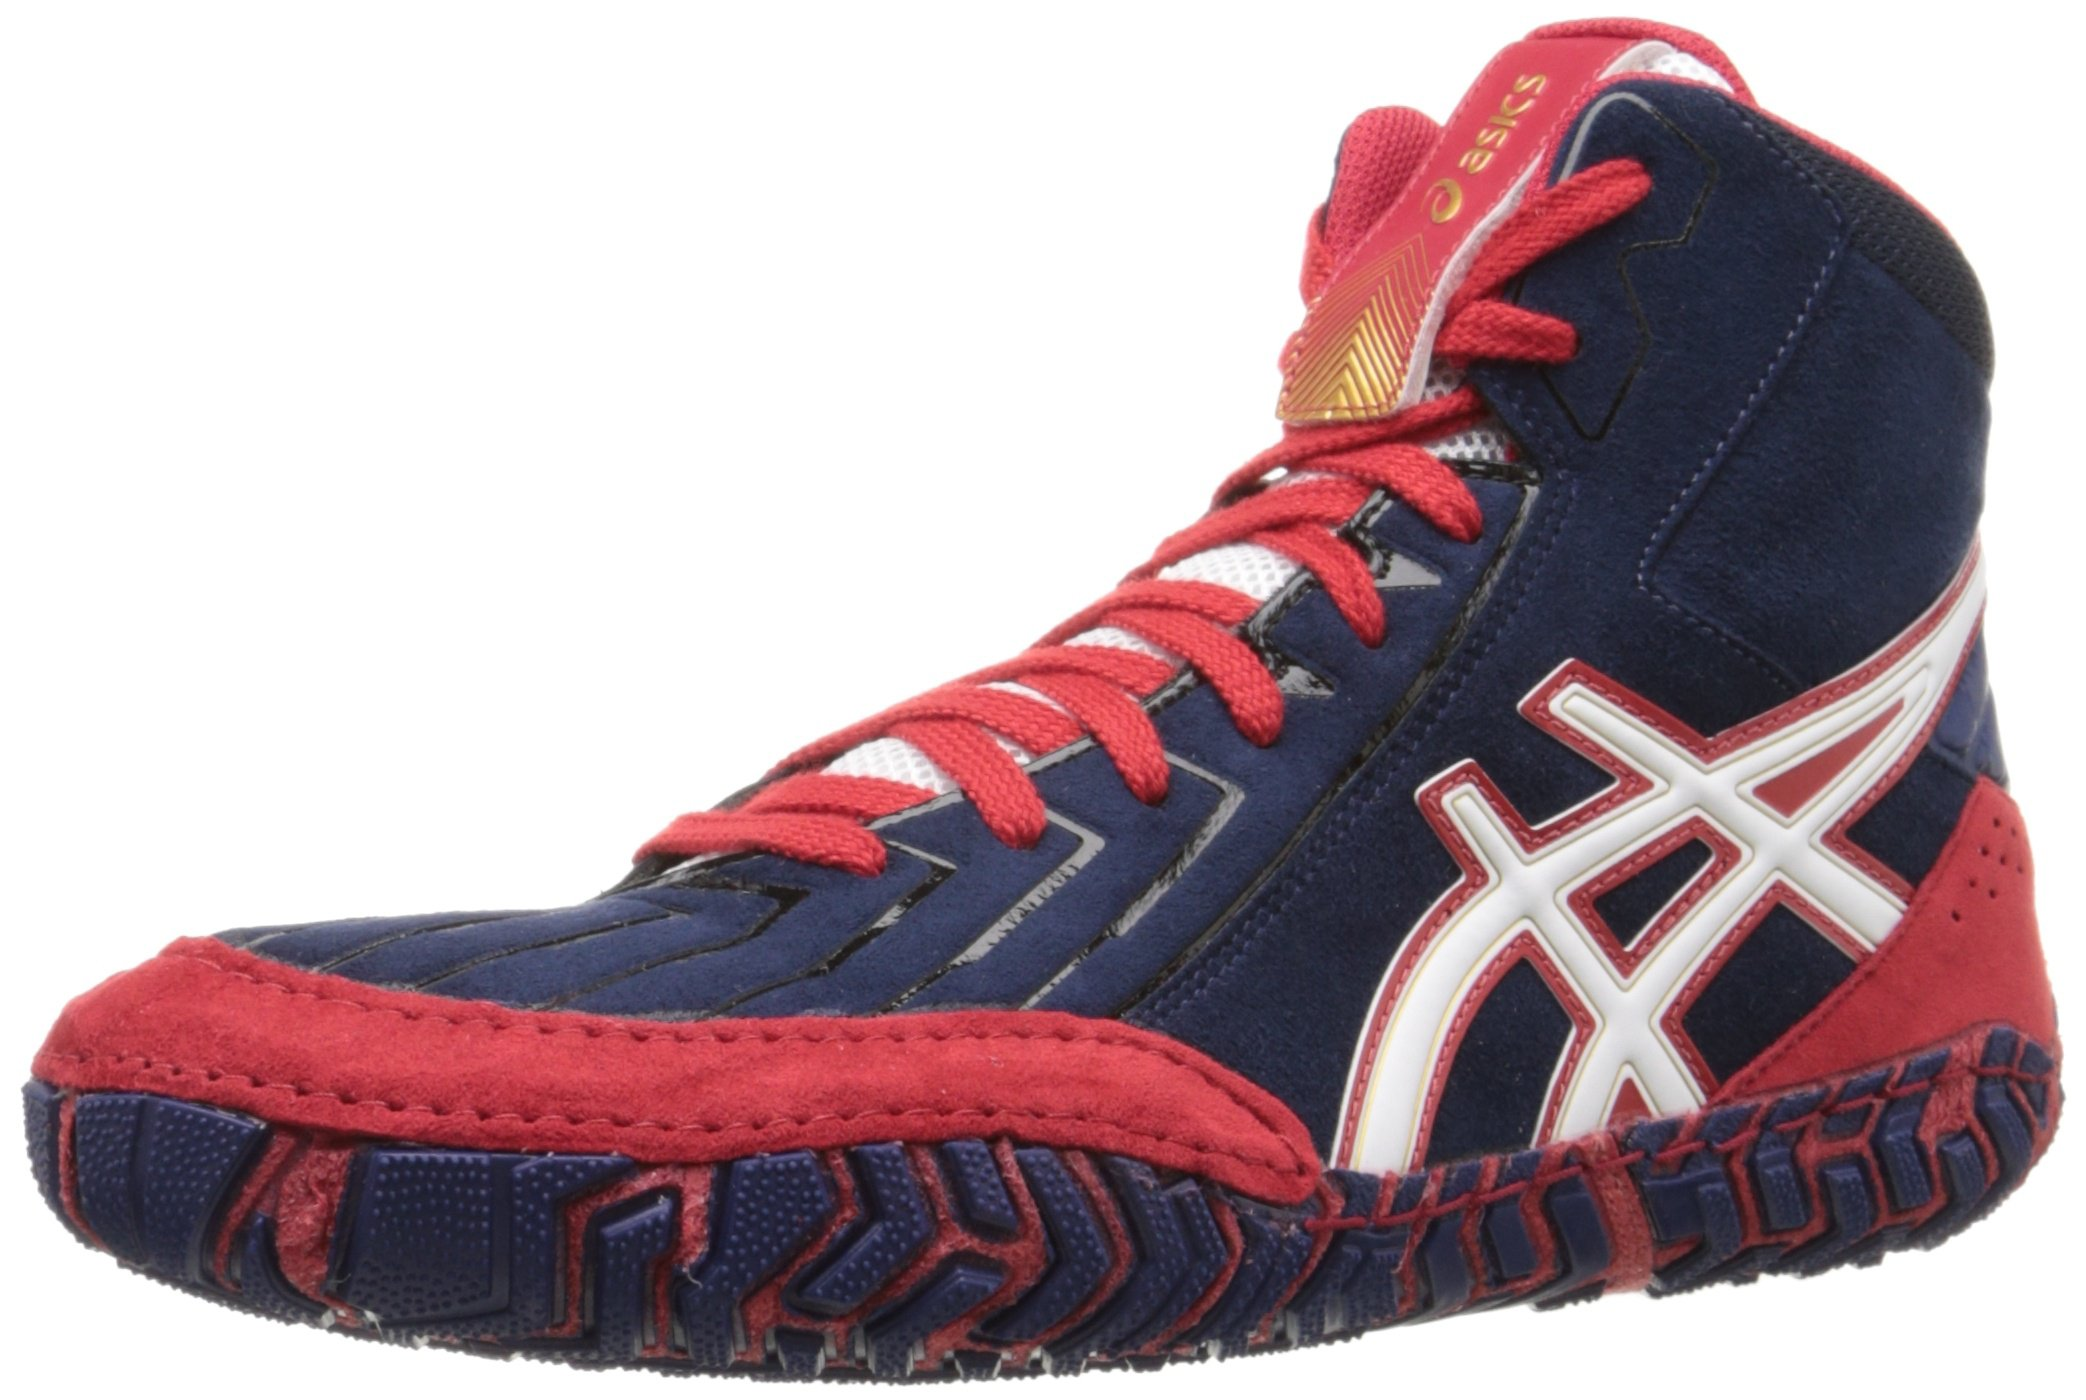 ASICS Men's Aggressor 3 Wrestling Shoe, Estate Blue/White/True Red, 10.5 M US